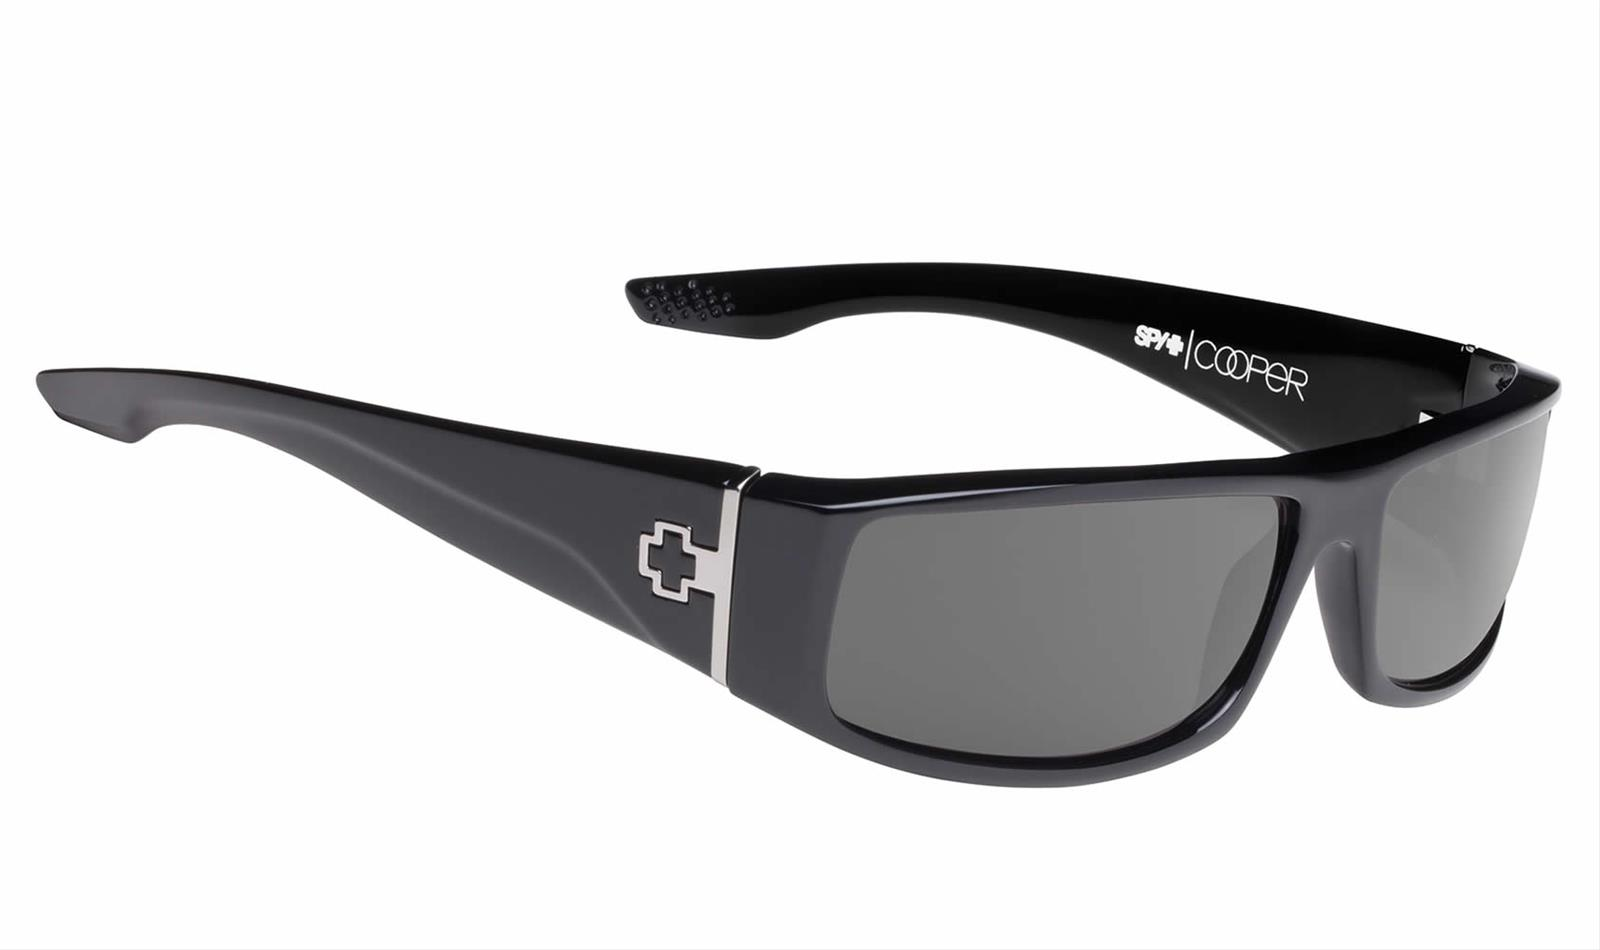 edd1855adb4d1 SPY Optic Cooper Sunglasses 670195038863 - Free Shipping on Orders Over  99  at Summit Racing